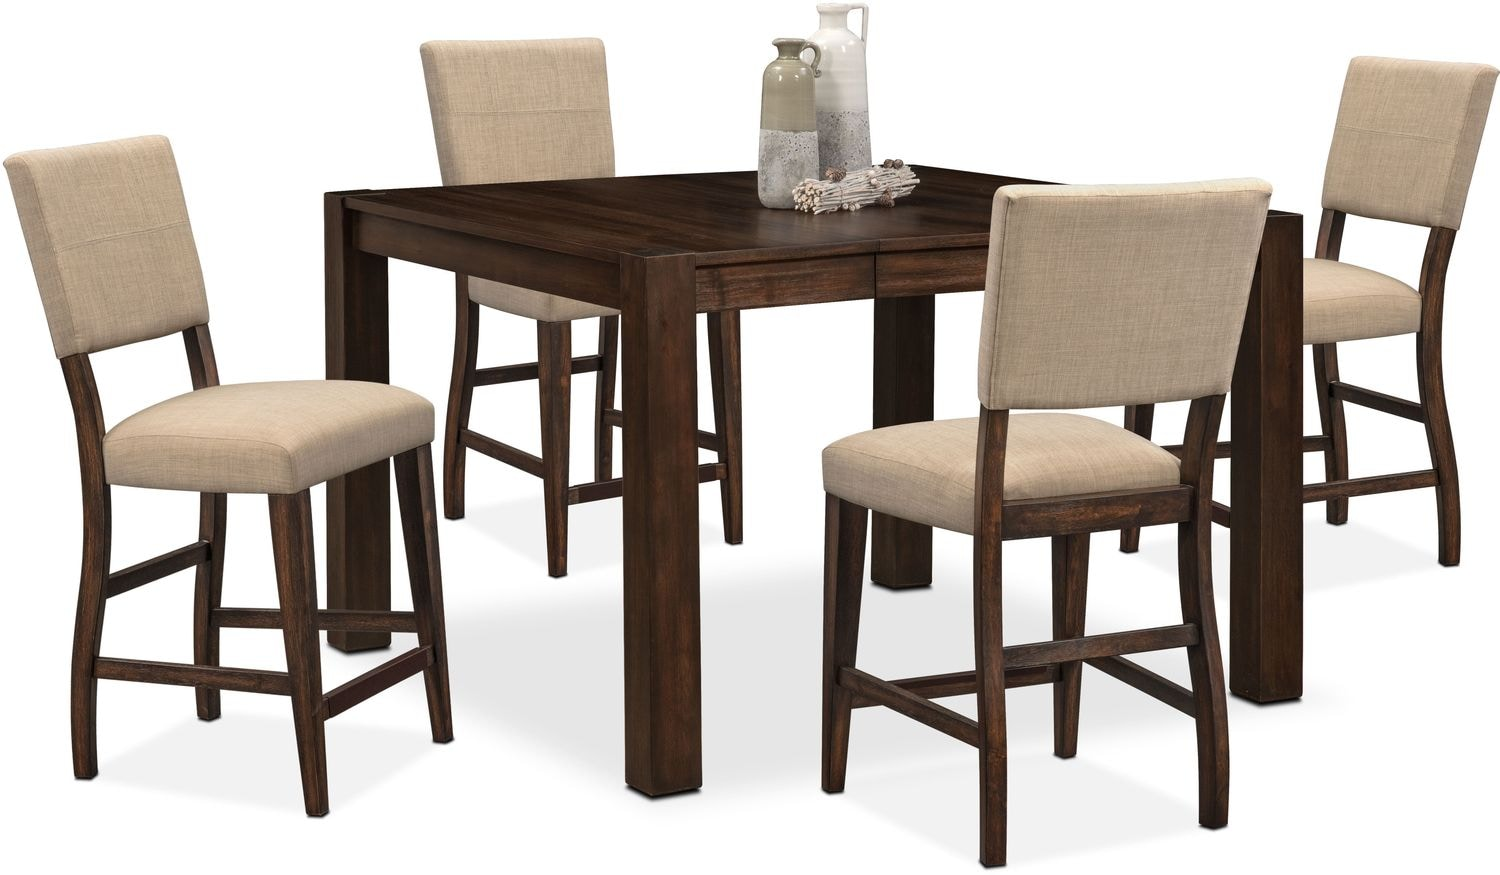 Tribeca Counter-Height Table and 4 Upholstered Side Chairs ...